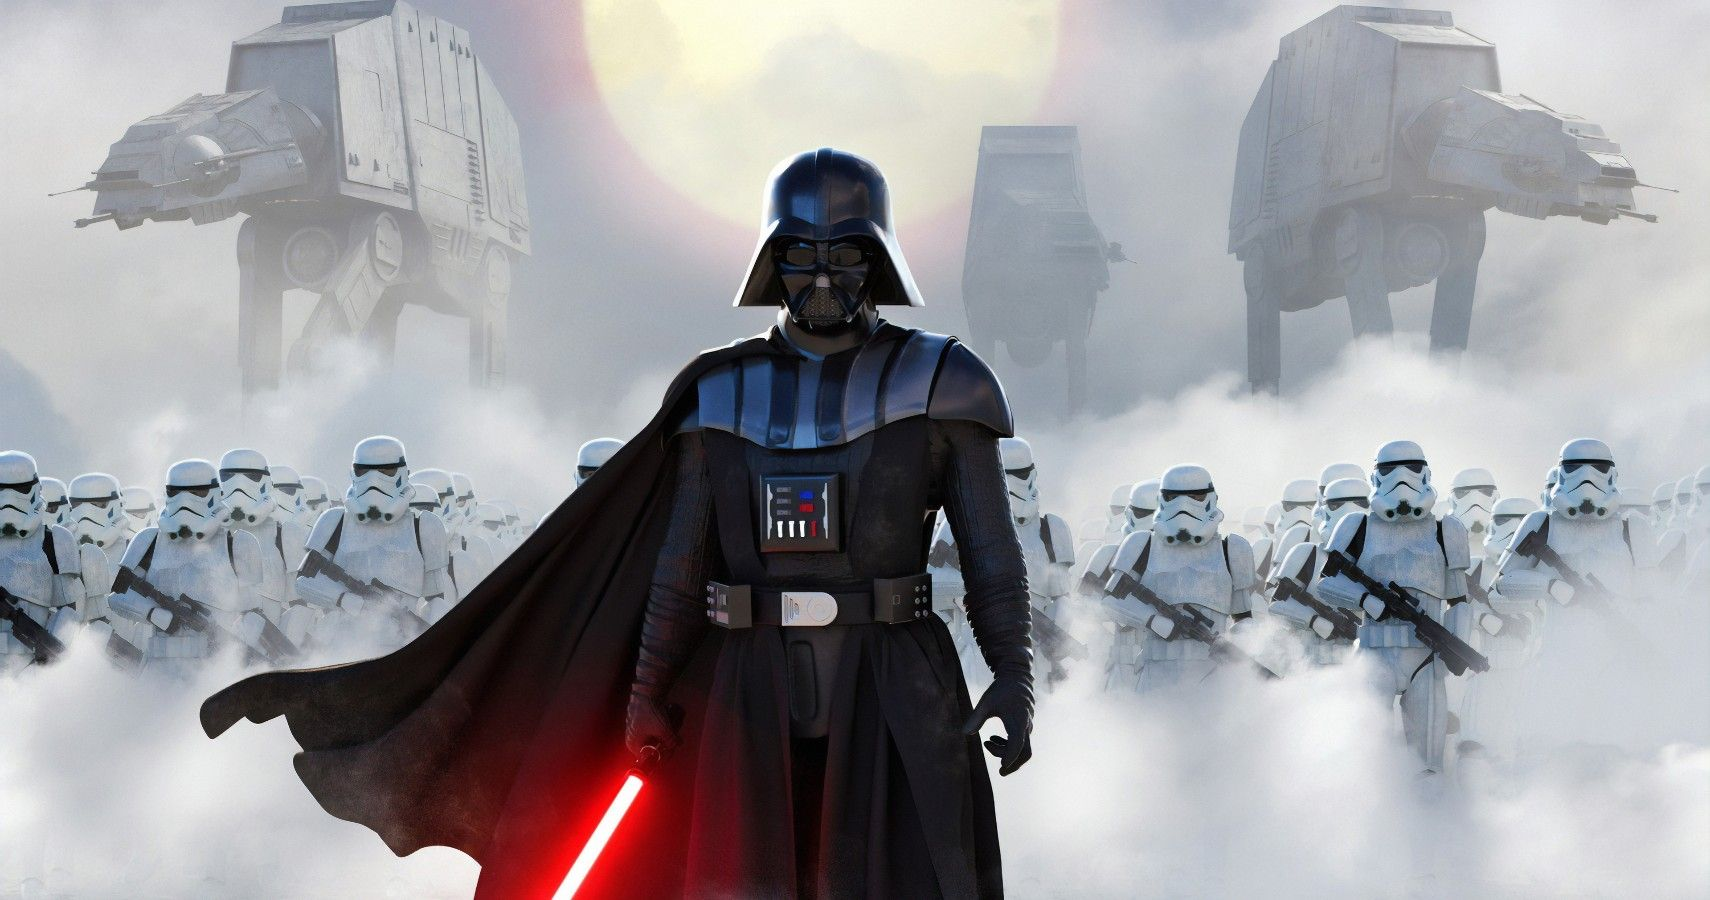 star wars: 5 reasons why darth vader deserves his own